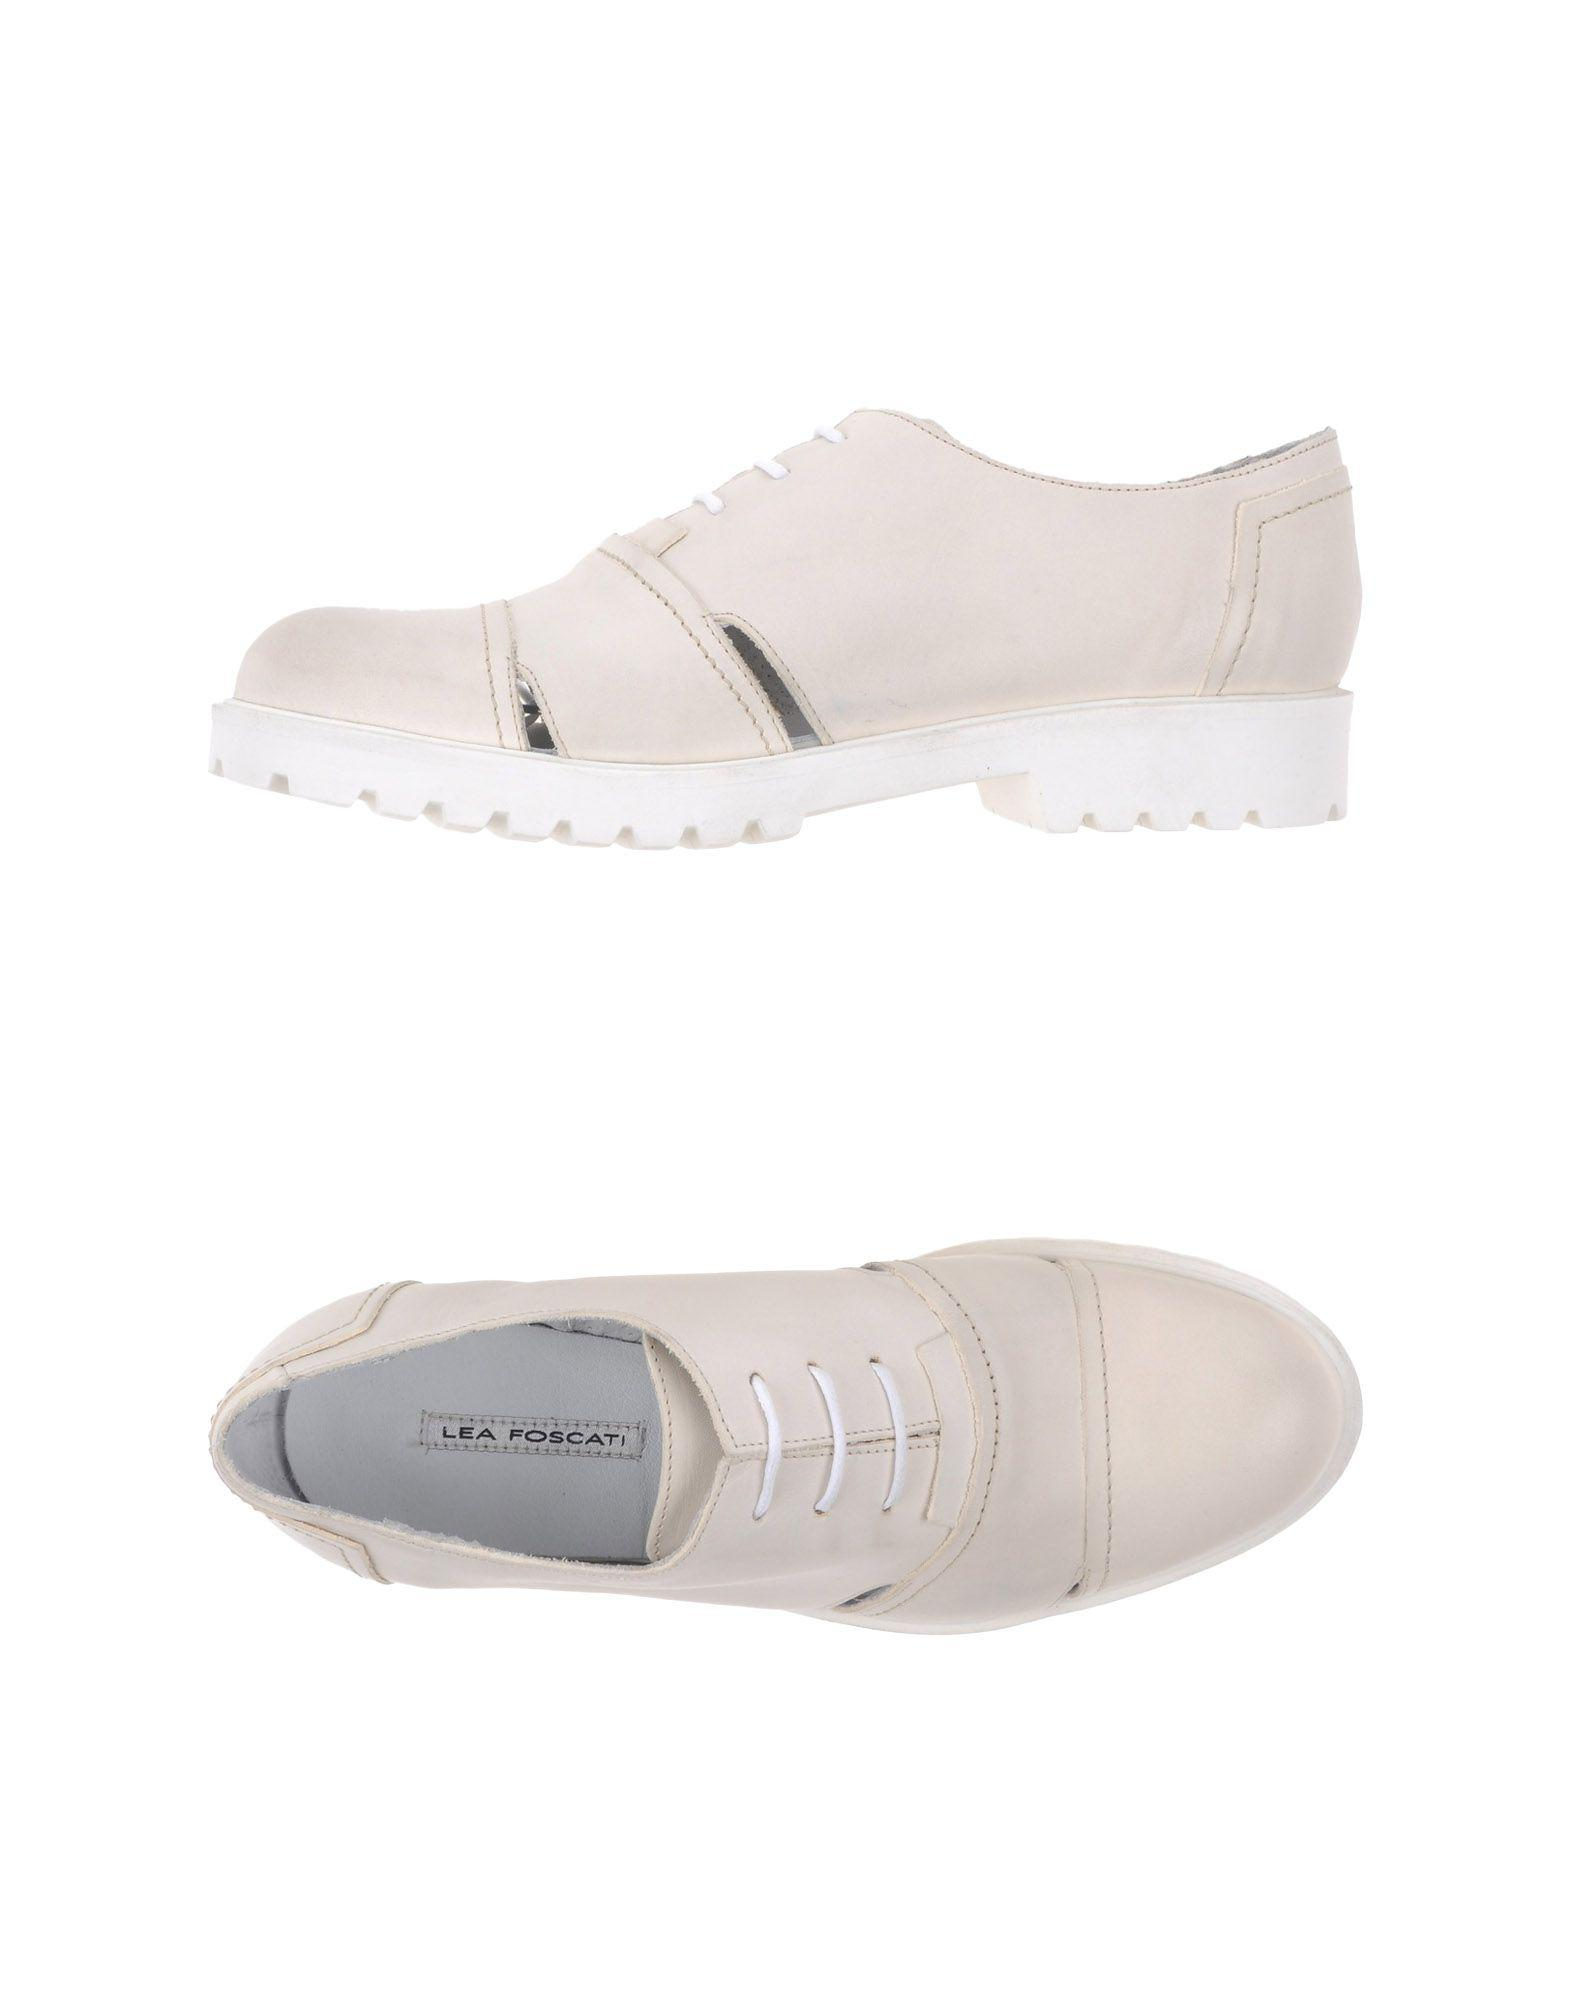 LEA FOSCATI Laced shoes outlet popular outlet visit new free shipping professional free shipping cost YrozJ